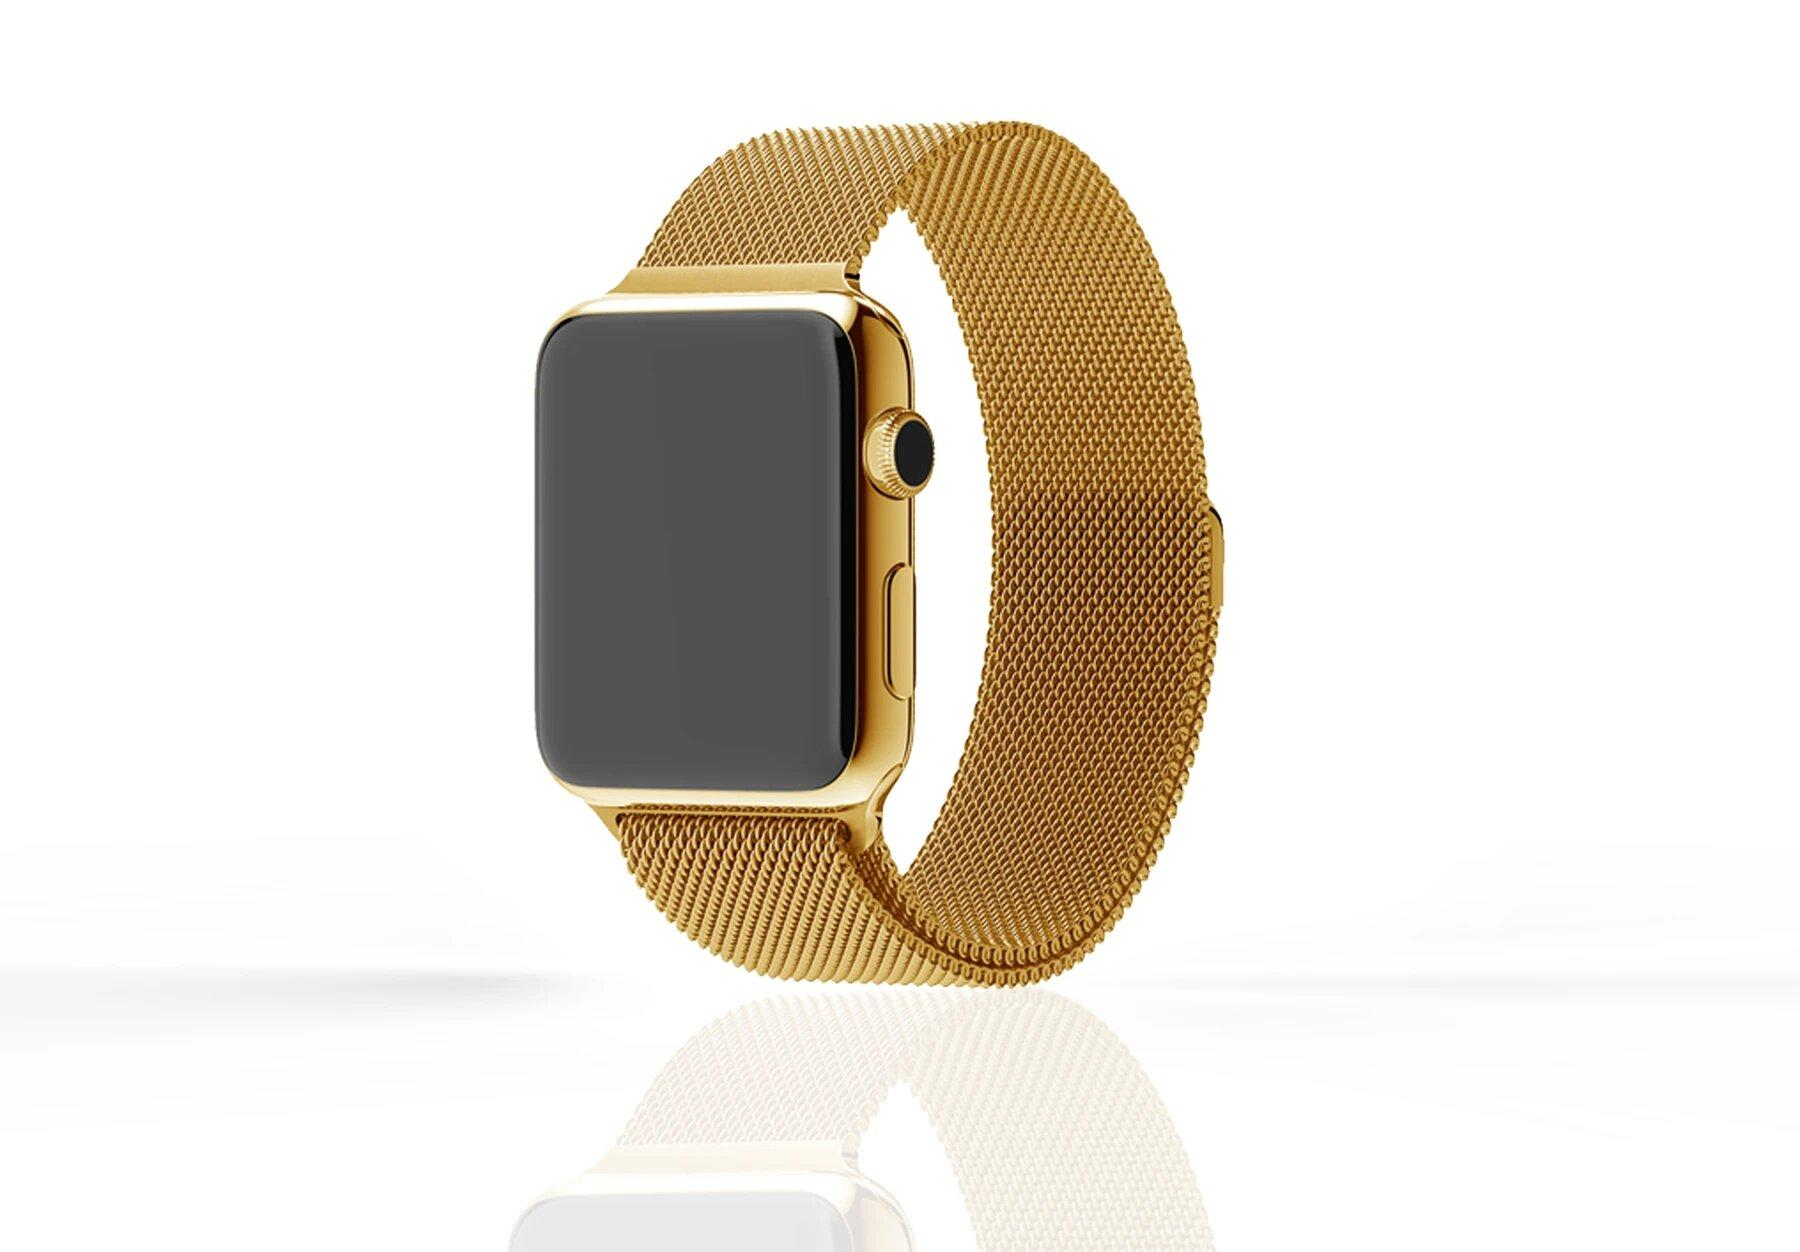 Luxury Apple Watch Series 6 with Milanese Strap